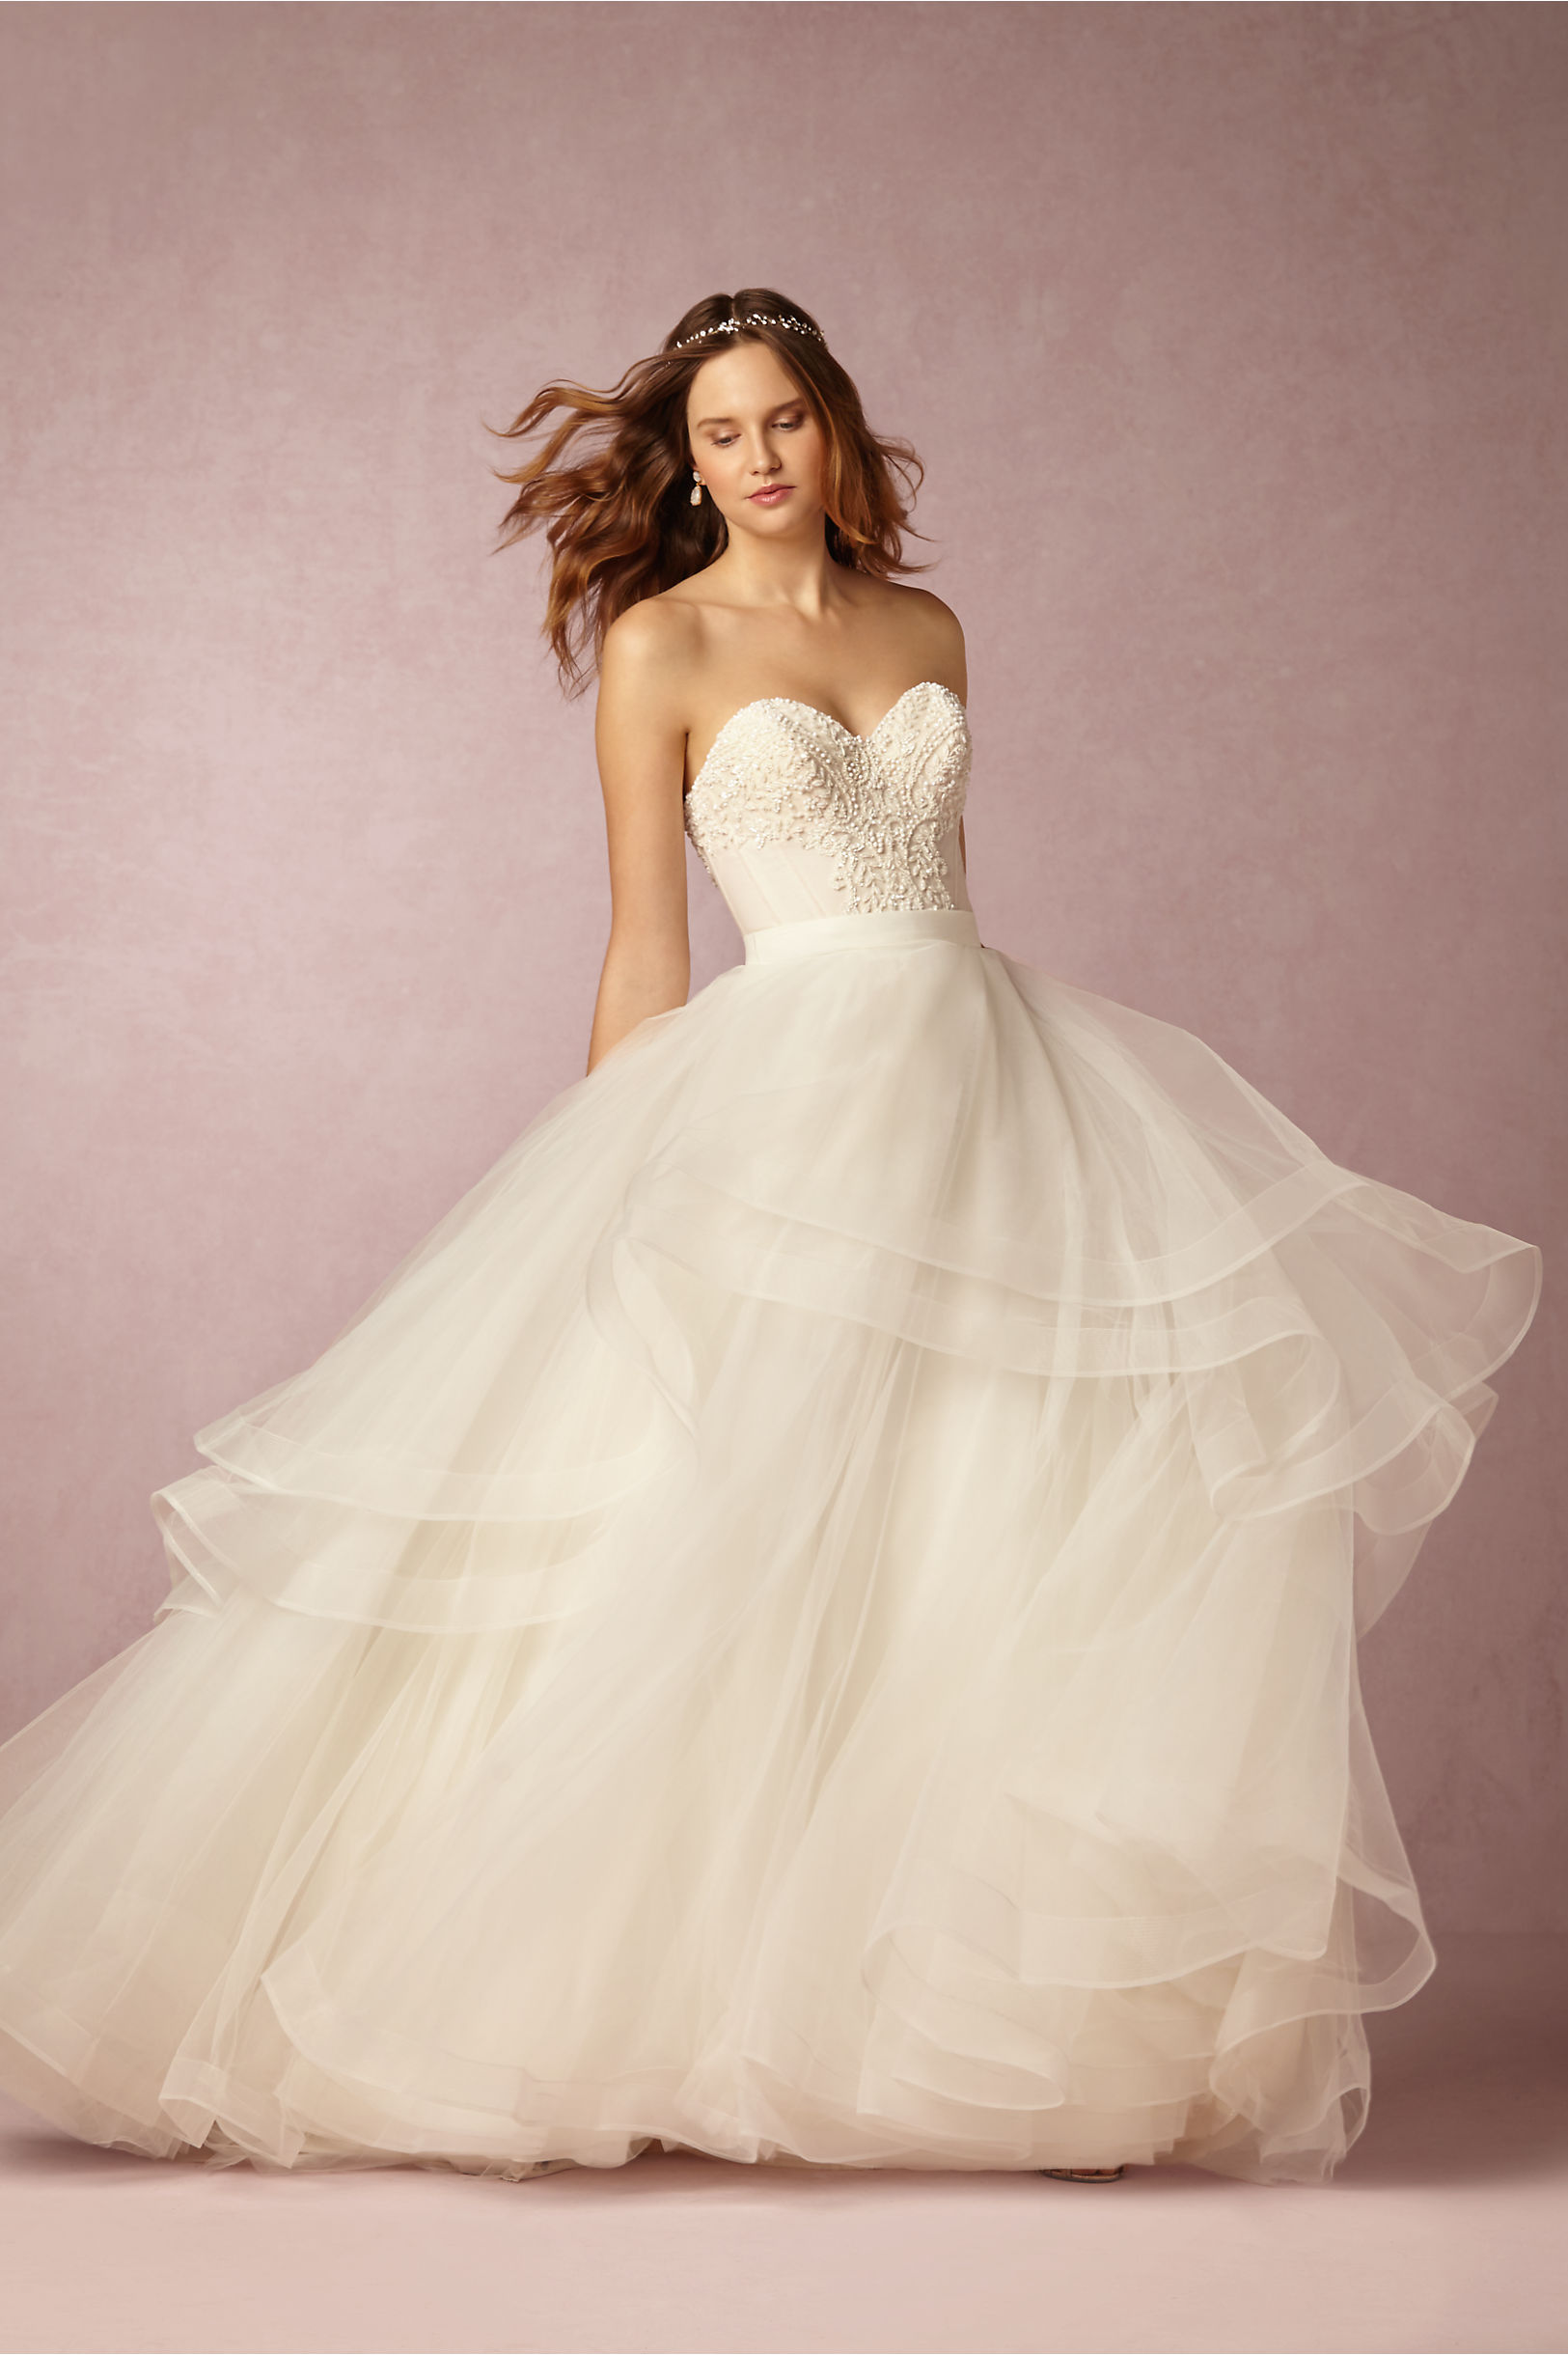 The Best Strapless Wedding Dresses - EverAfterGuide